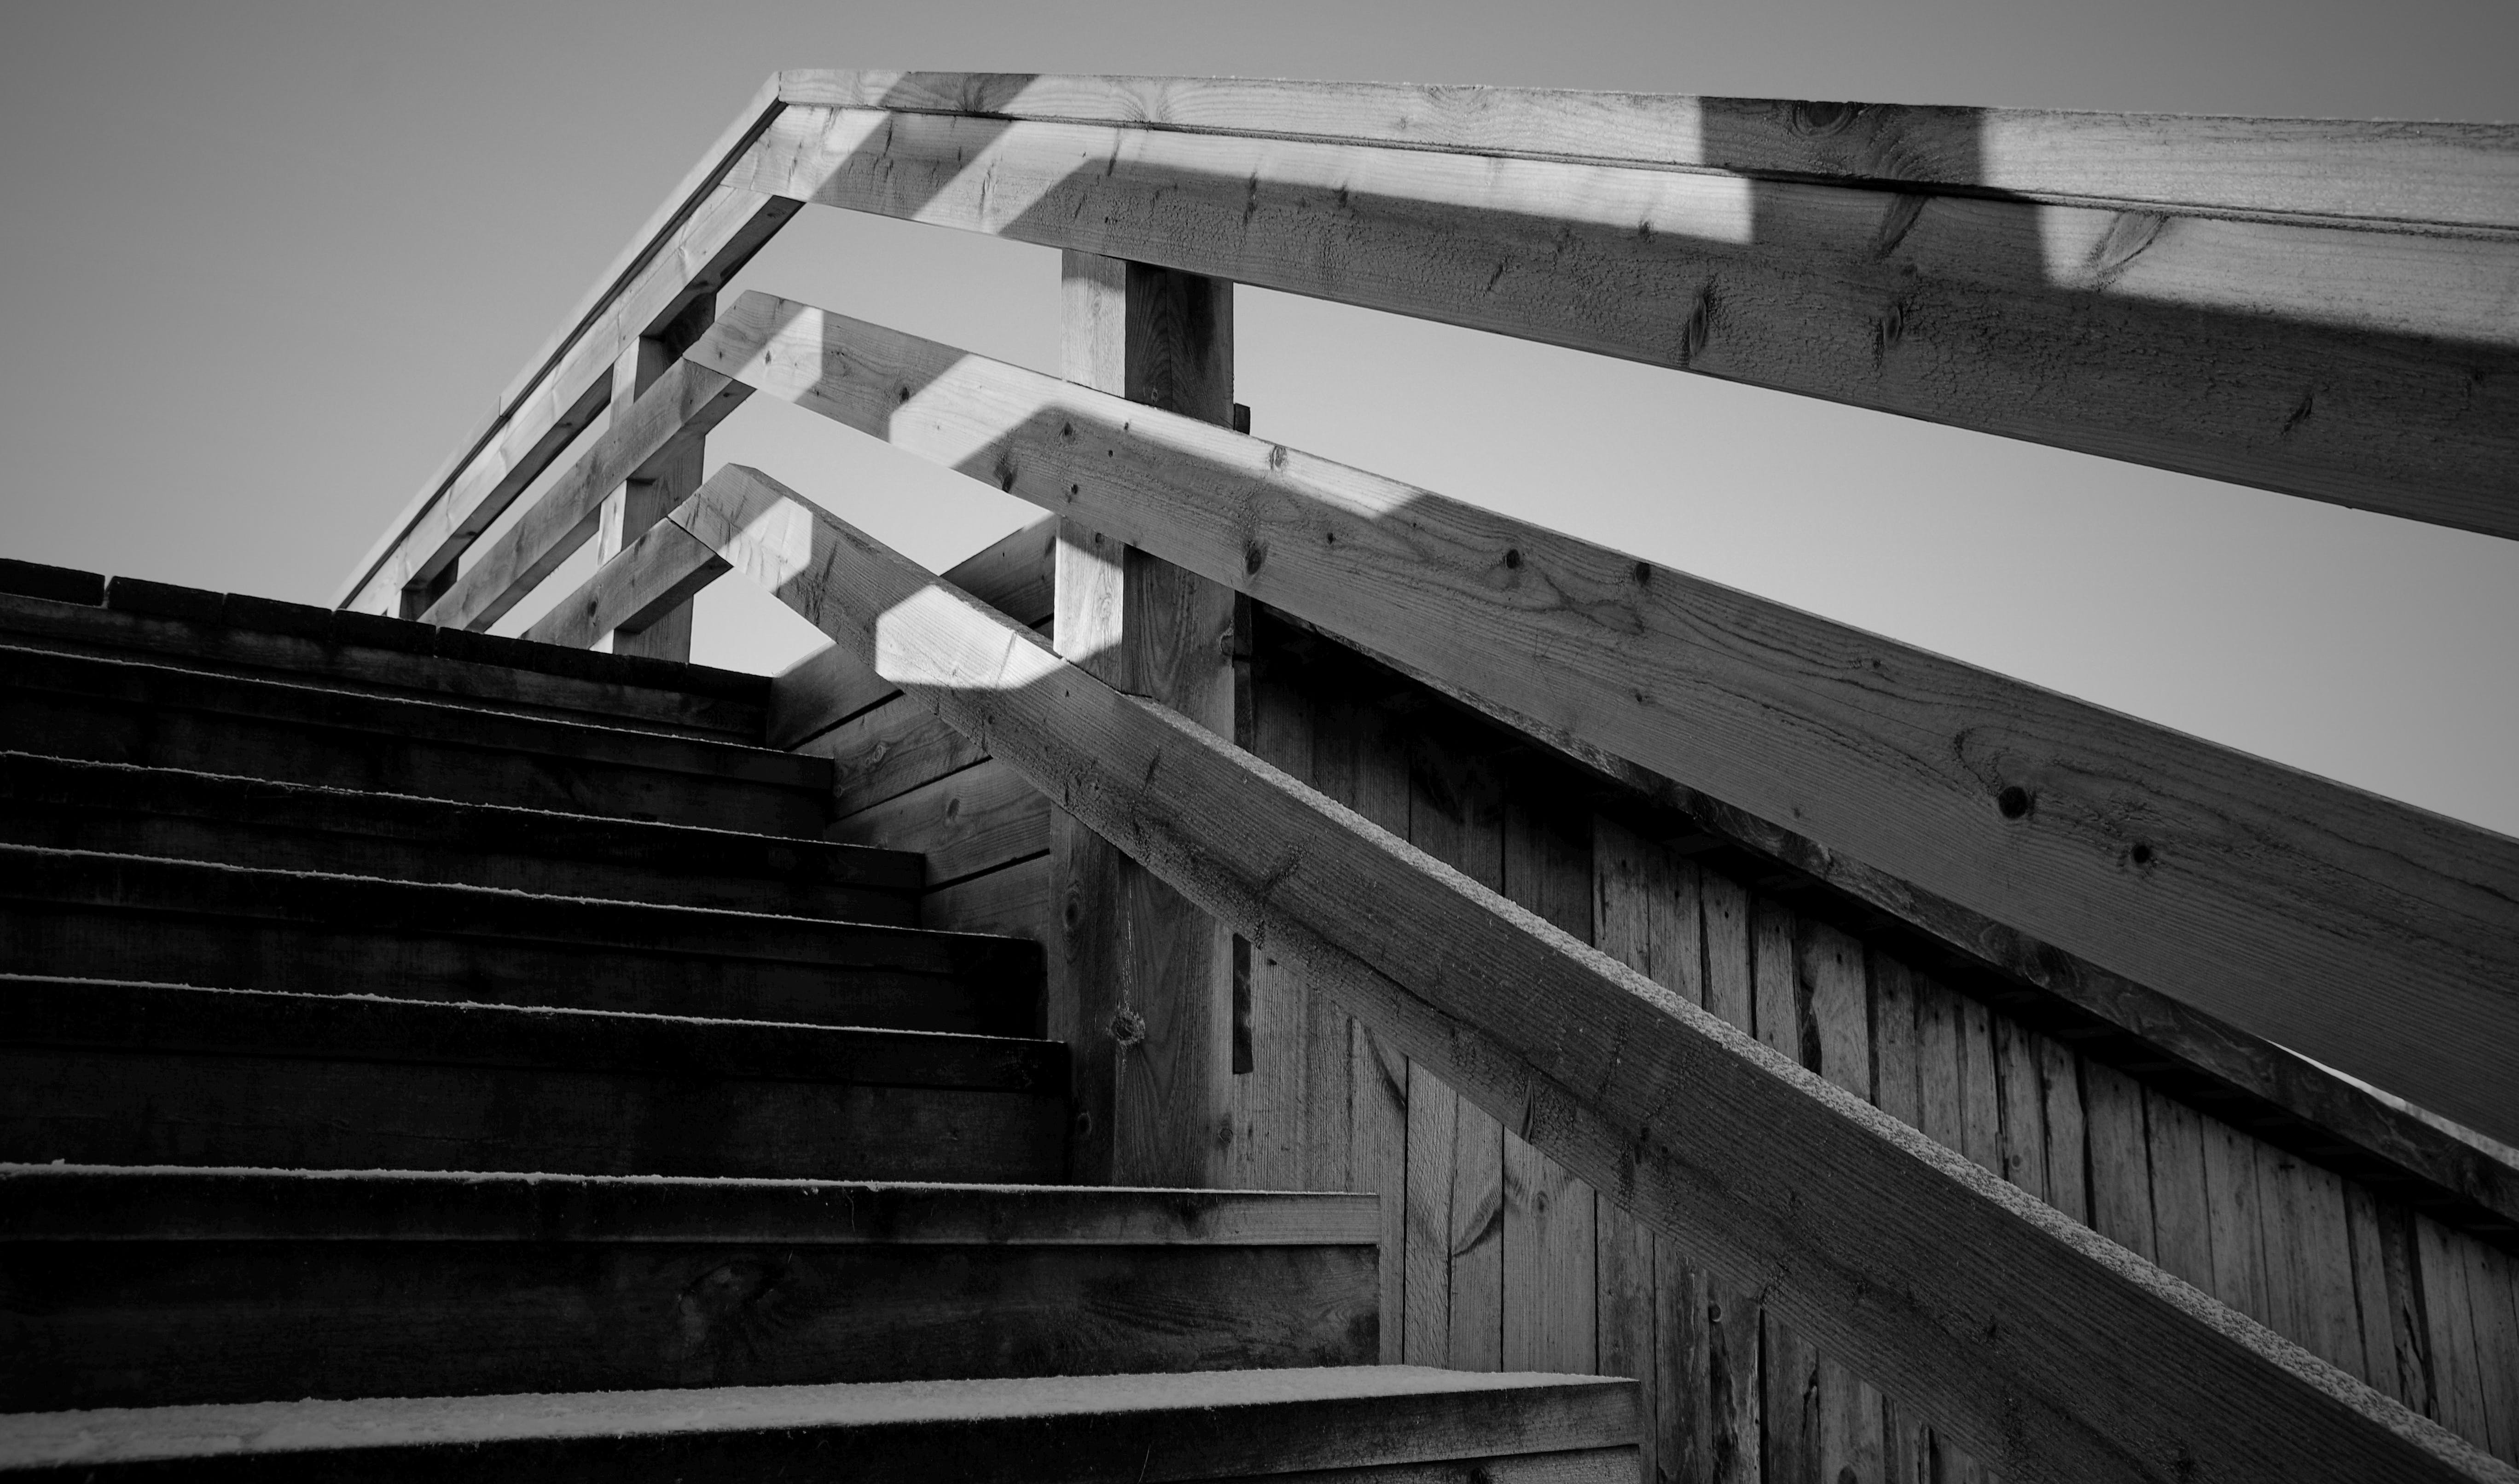 Grayscale Photo of Wooden Stairs